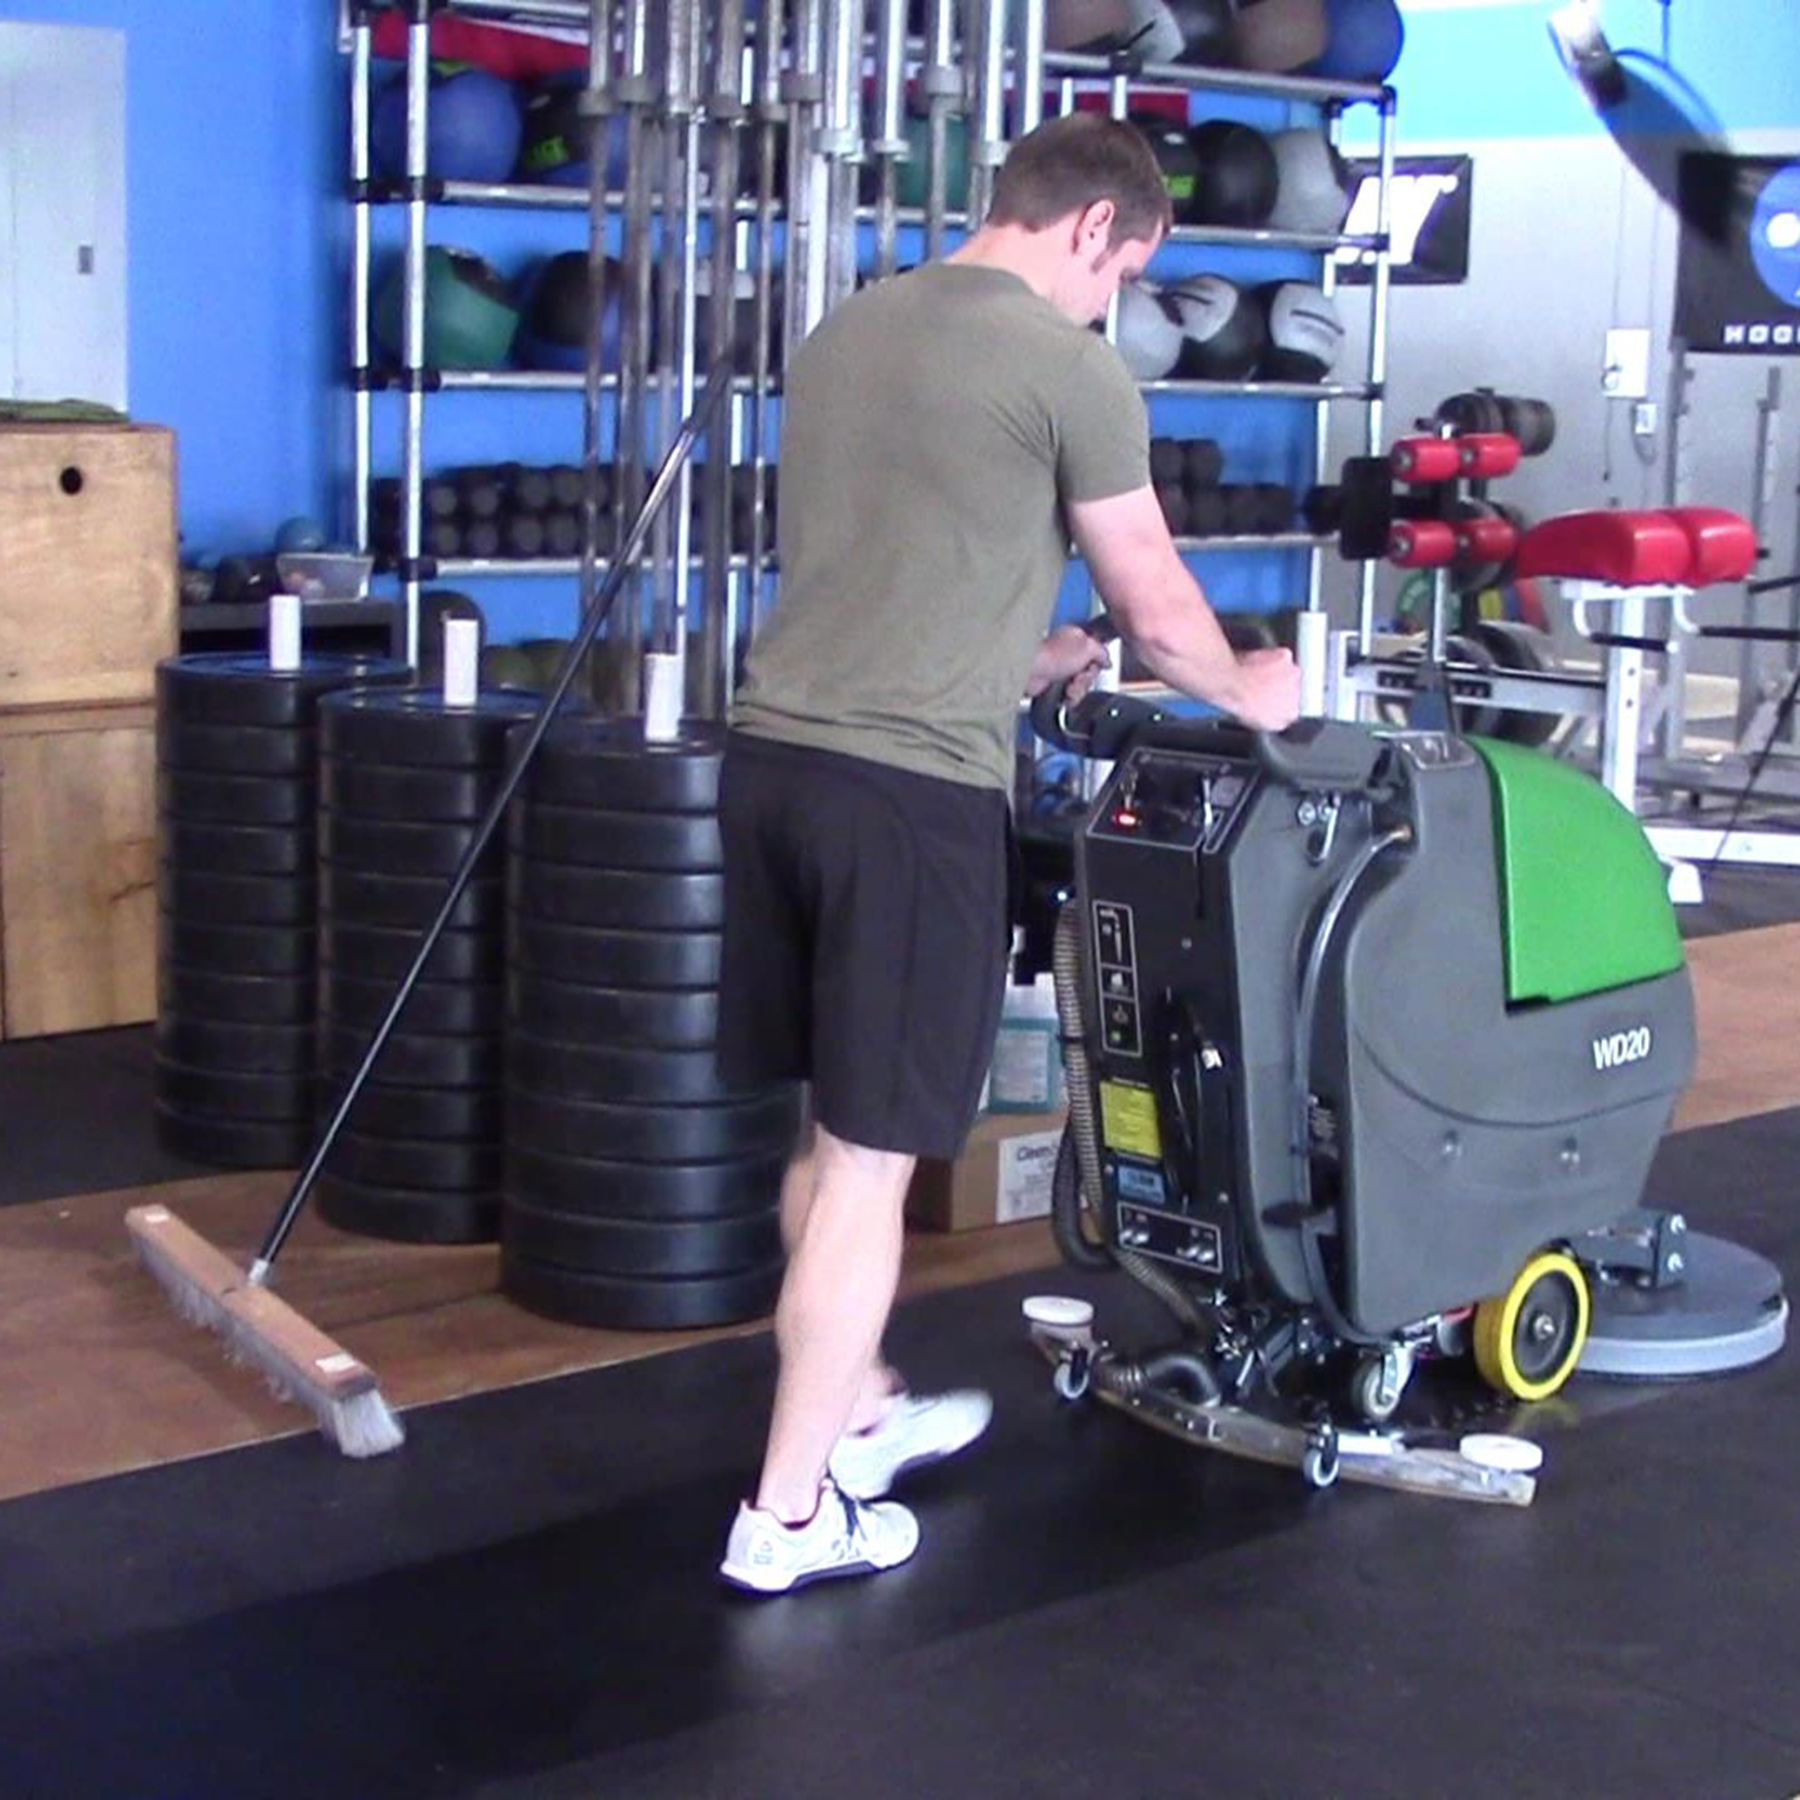 Factory Cleaning Equipment Inc Announces New